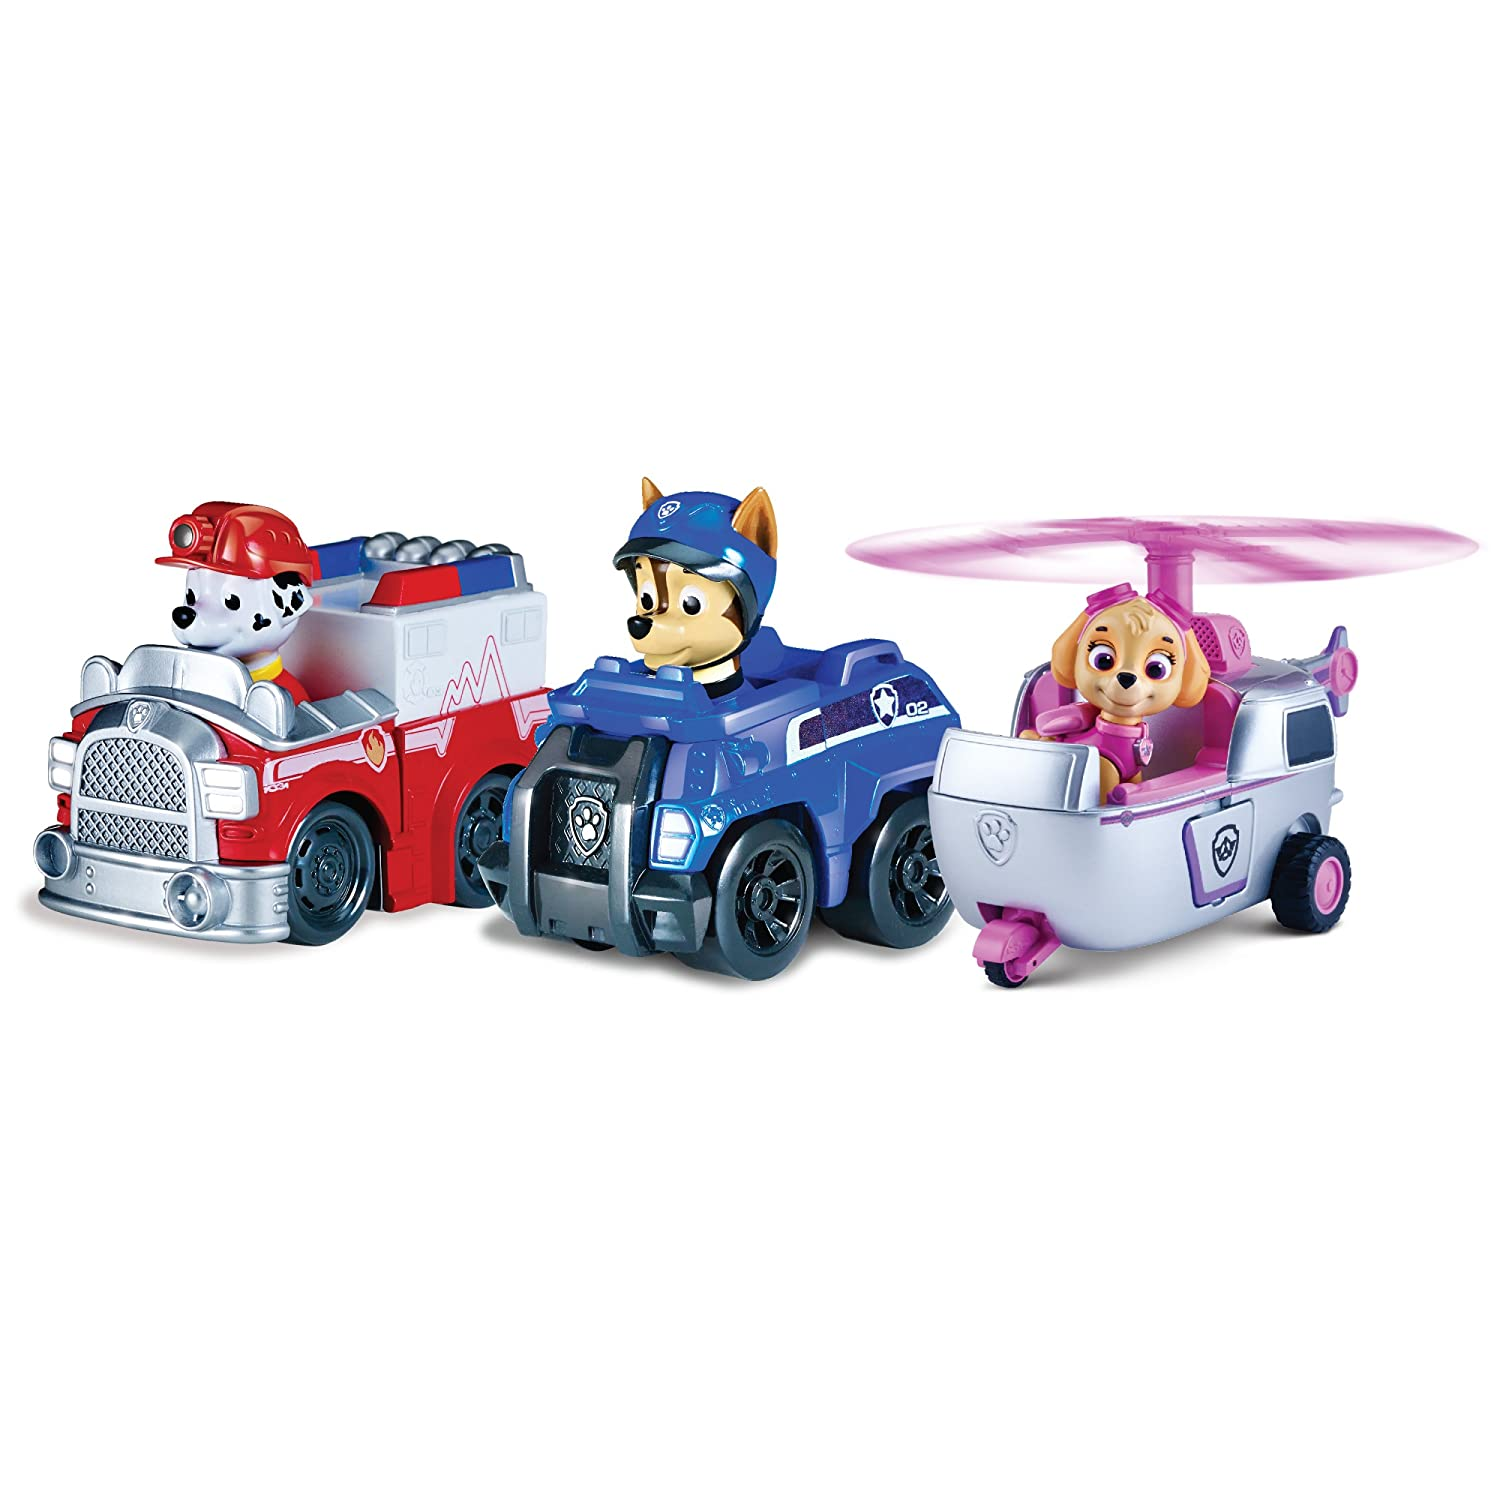 Paw Patrol Rescue Racers 3 Pack Vehicle Set, Marshall/Chase/Skye Spin Master 6024761